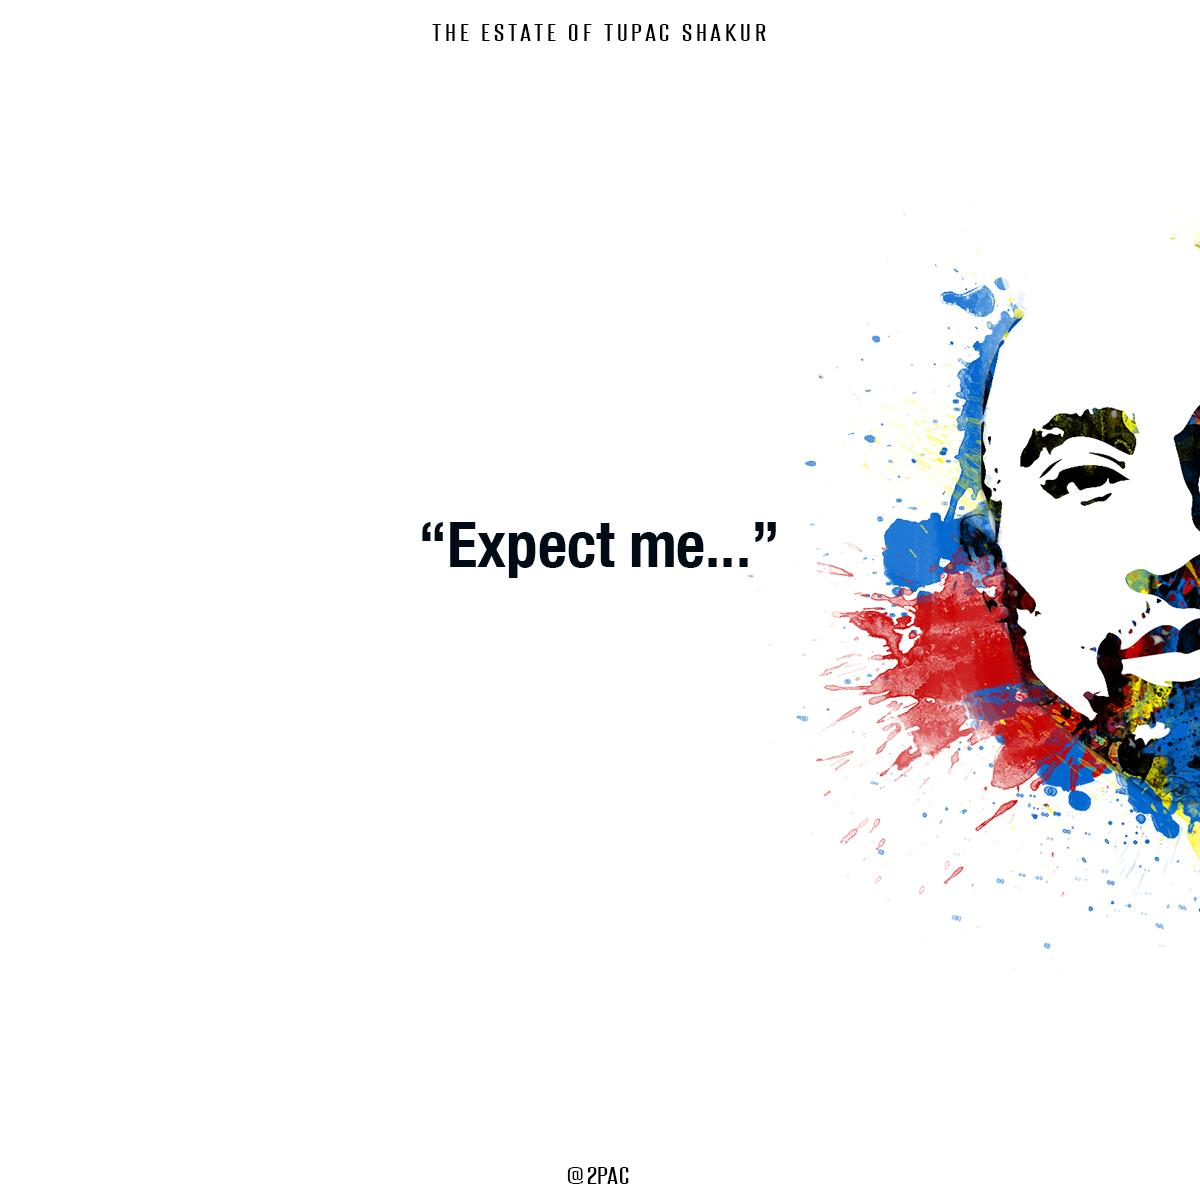 Return tomorrow at 5pm EST for a special announcement from The Estate of Tupac Shakur. http://t.co/aUvgW0Ycp2